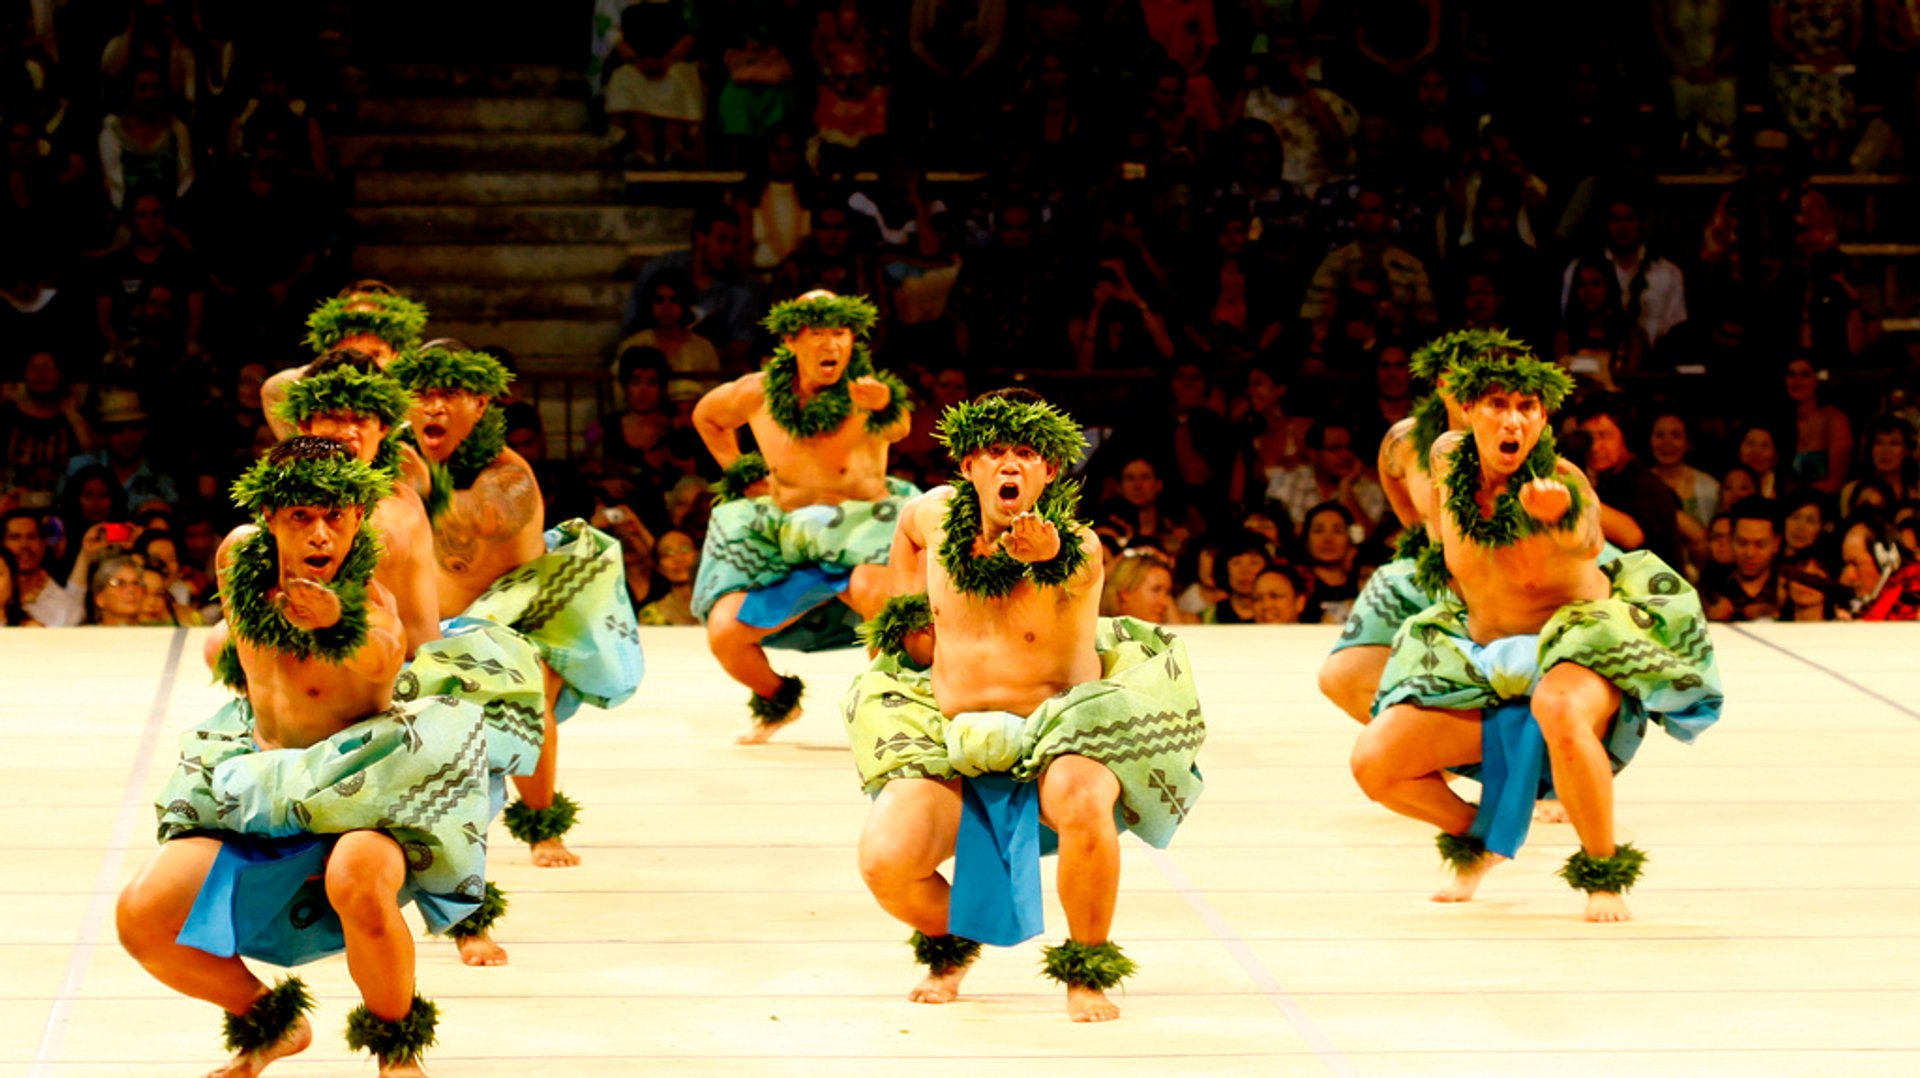 Merrie Monarch Festival in Hawaii - Best Season 2020